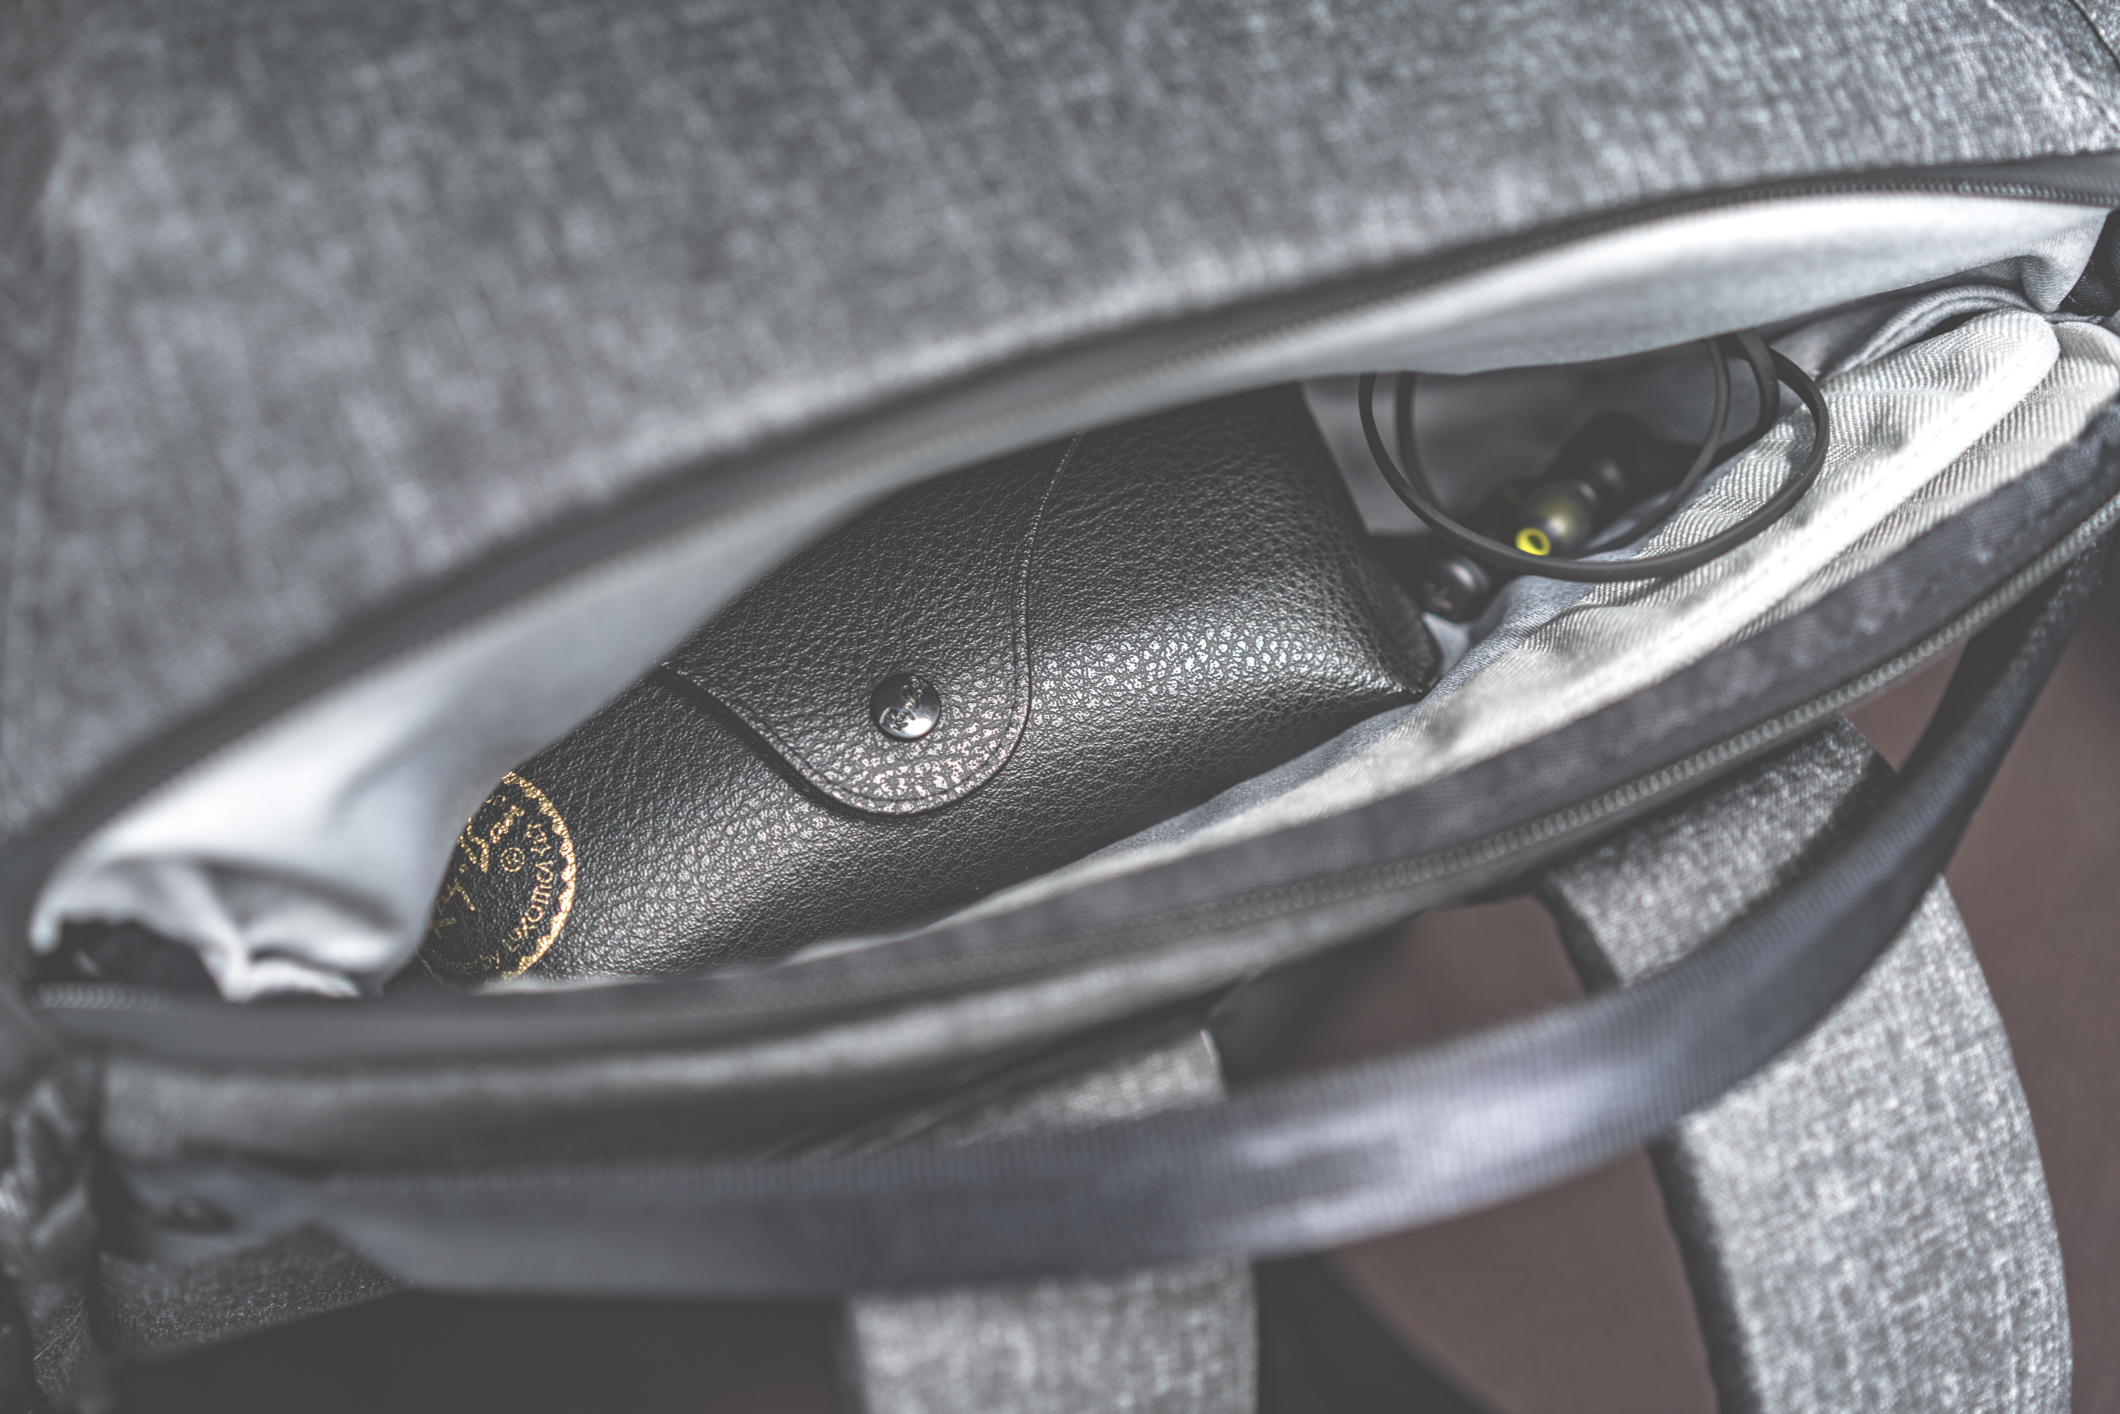 Hidden pouch in the laptop access zipper for small items.